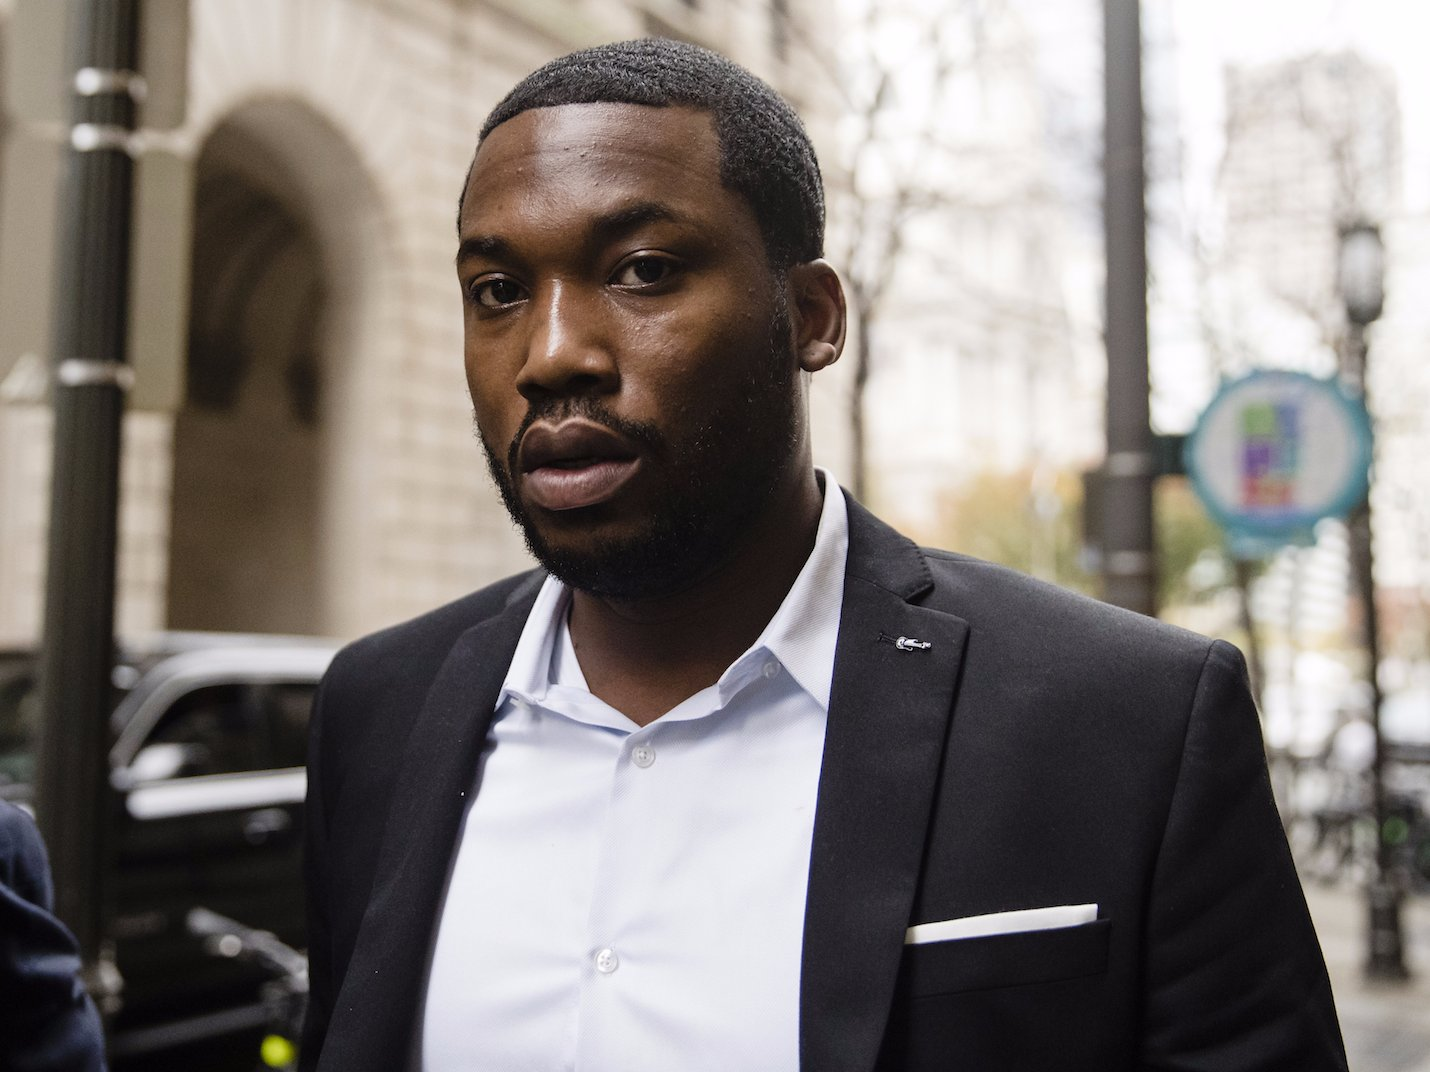 Over 25000 People Have Signed a Petition to Free Meek Mill